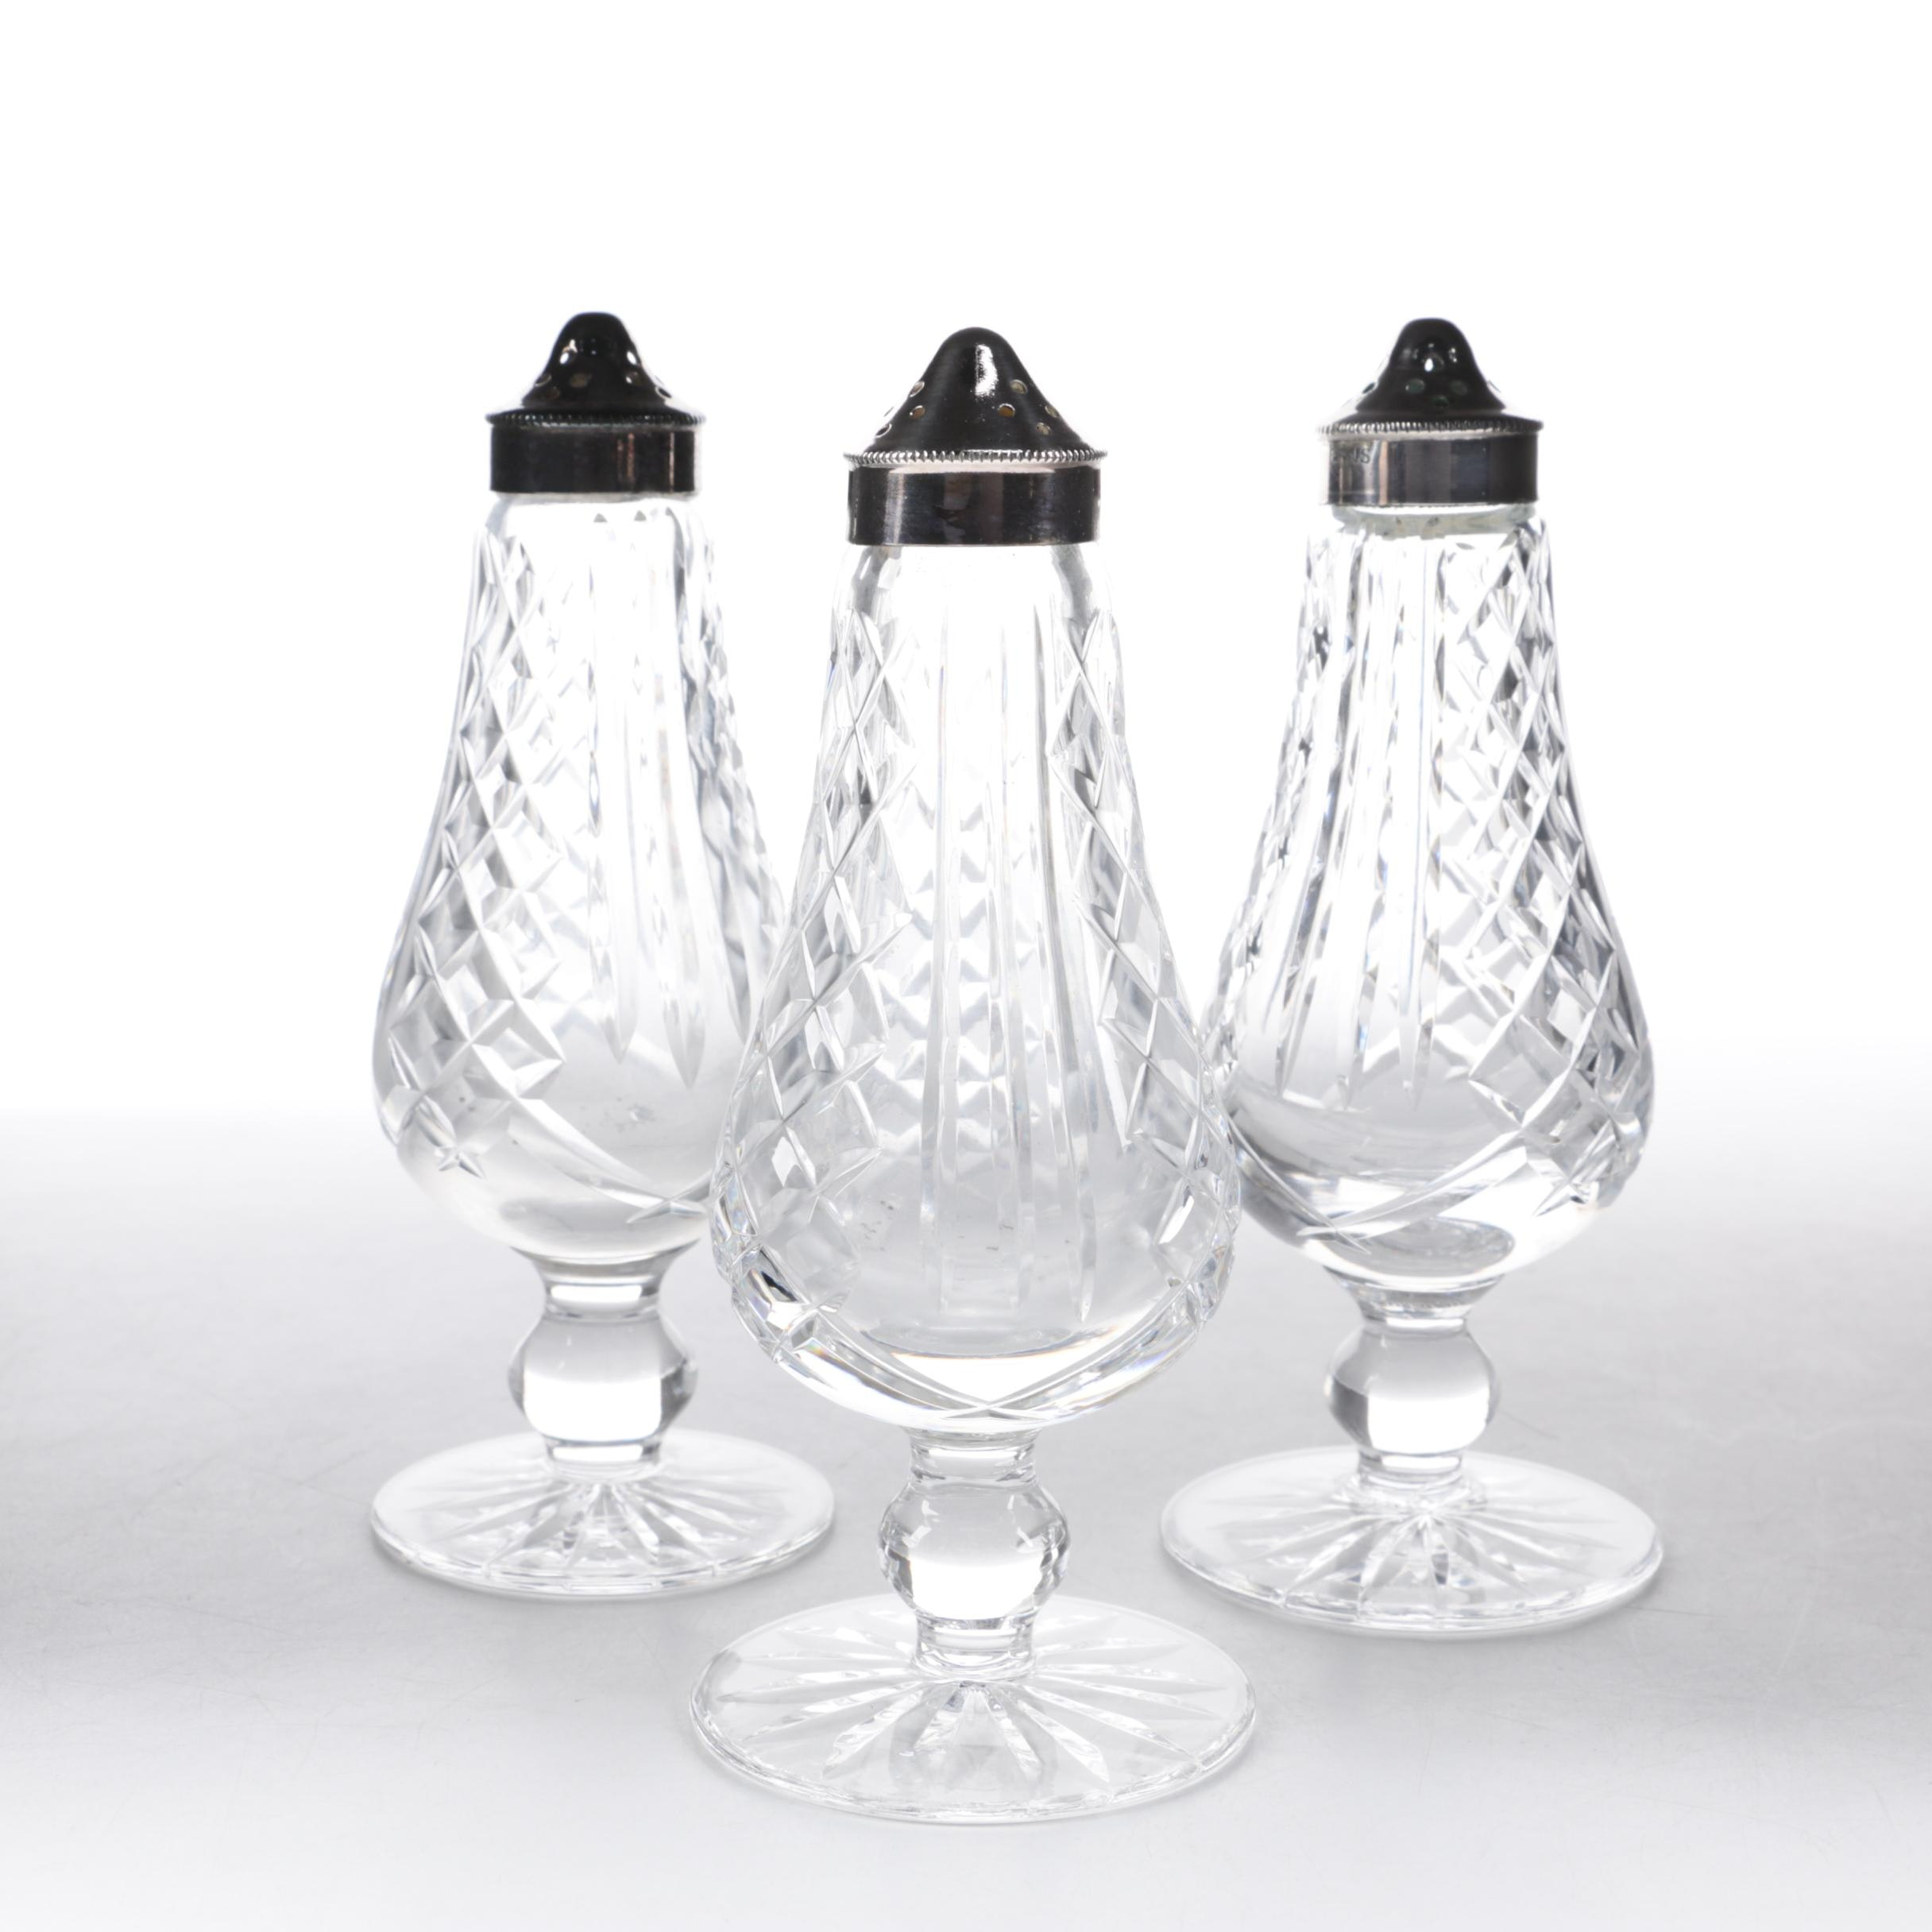 "Vintage Waterford Crystal ""Glengarriff"" Footed Shakers with Silver-Plated Caps"